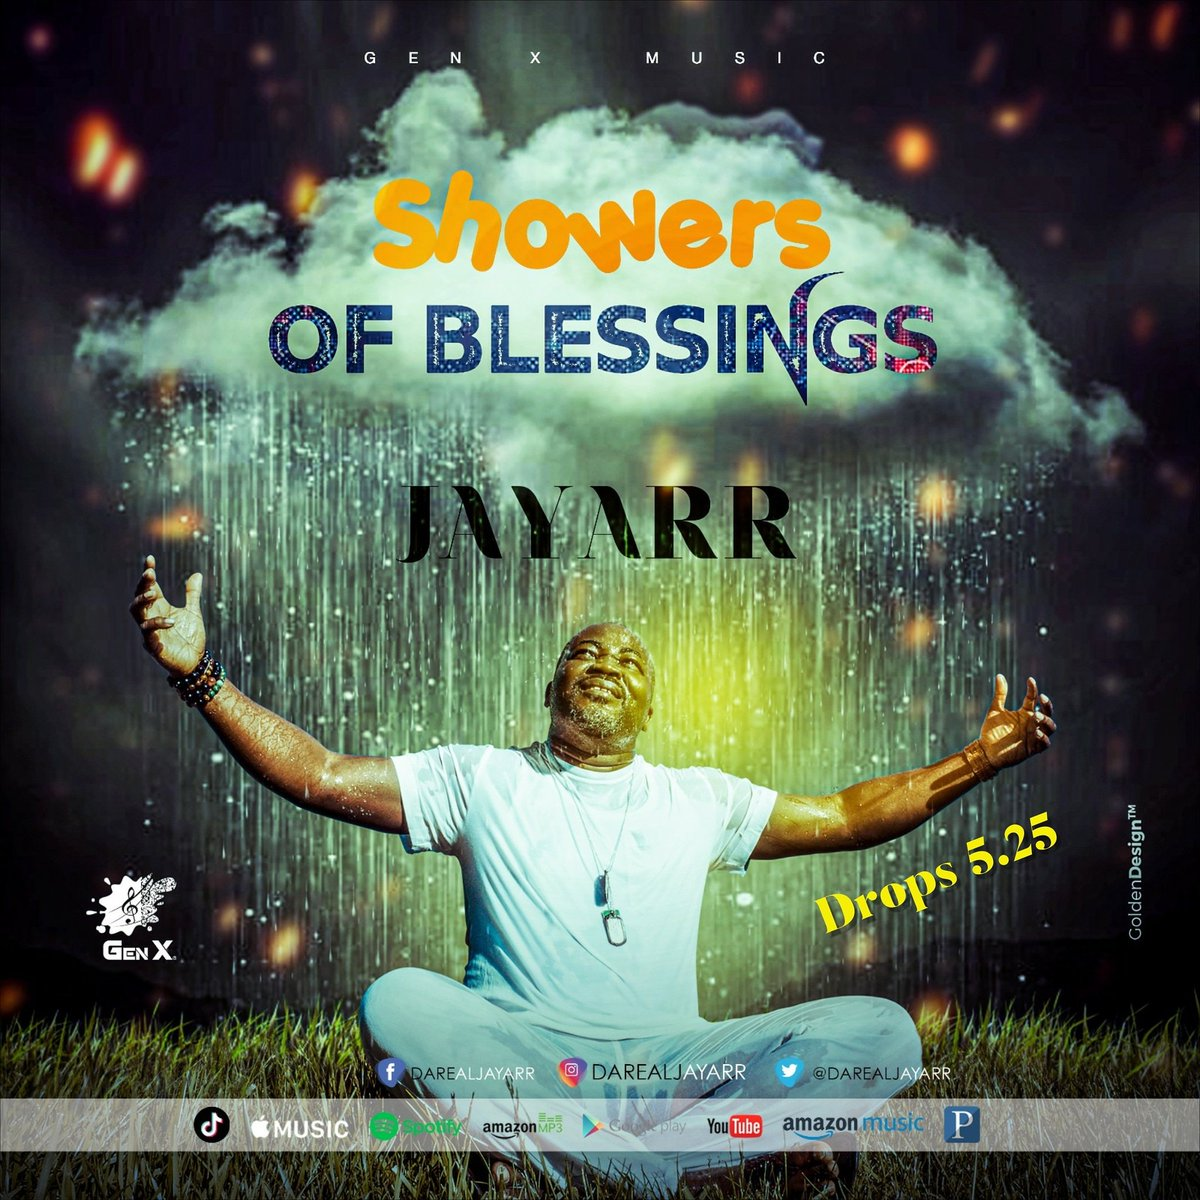 The number 5 represents God's grace. 5 × 5 = 25 represents grace upon grace. The 1st single on the album titled 5 is Showers of Blessings...drops 5.25 #showersofblessings #memorialday #musicislife #lifehappens #notbyaccident #itwasmeanttobethisway #reggaemusic   #SaloneTwitter https://t.co/yEnHI38zLu